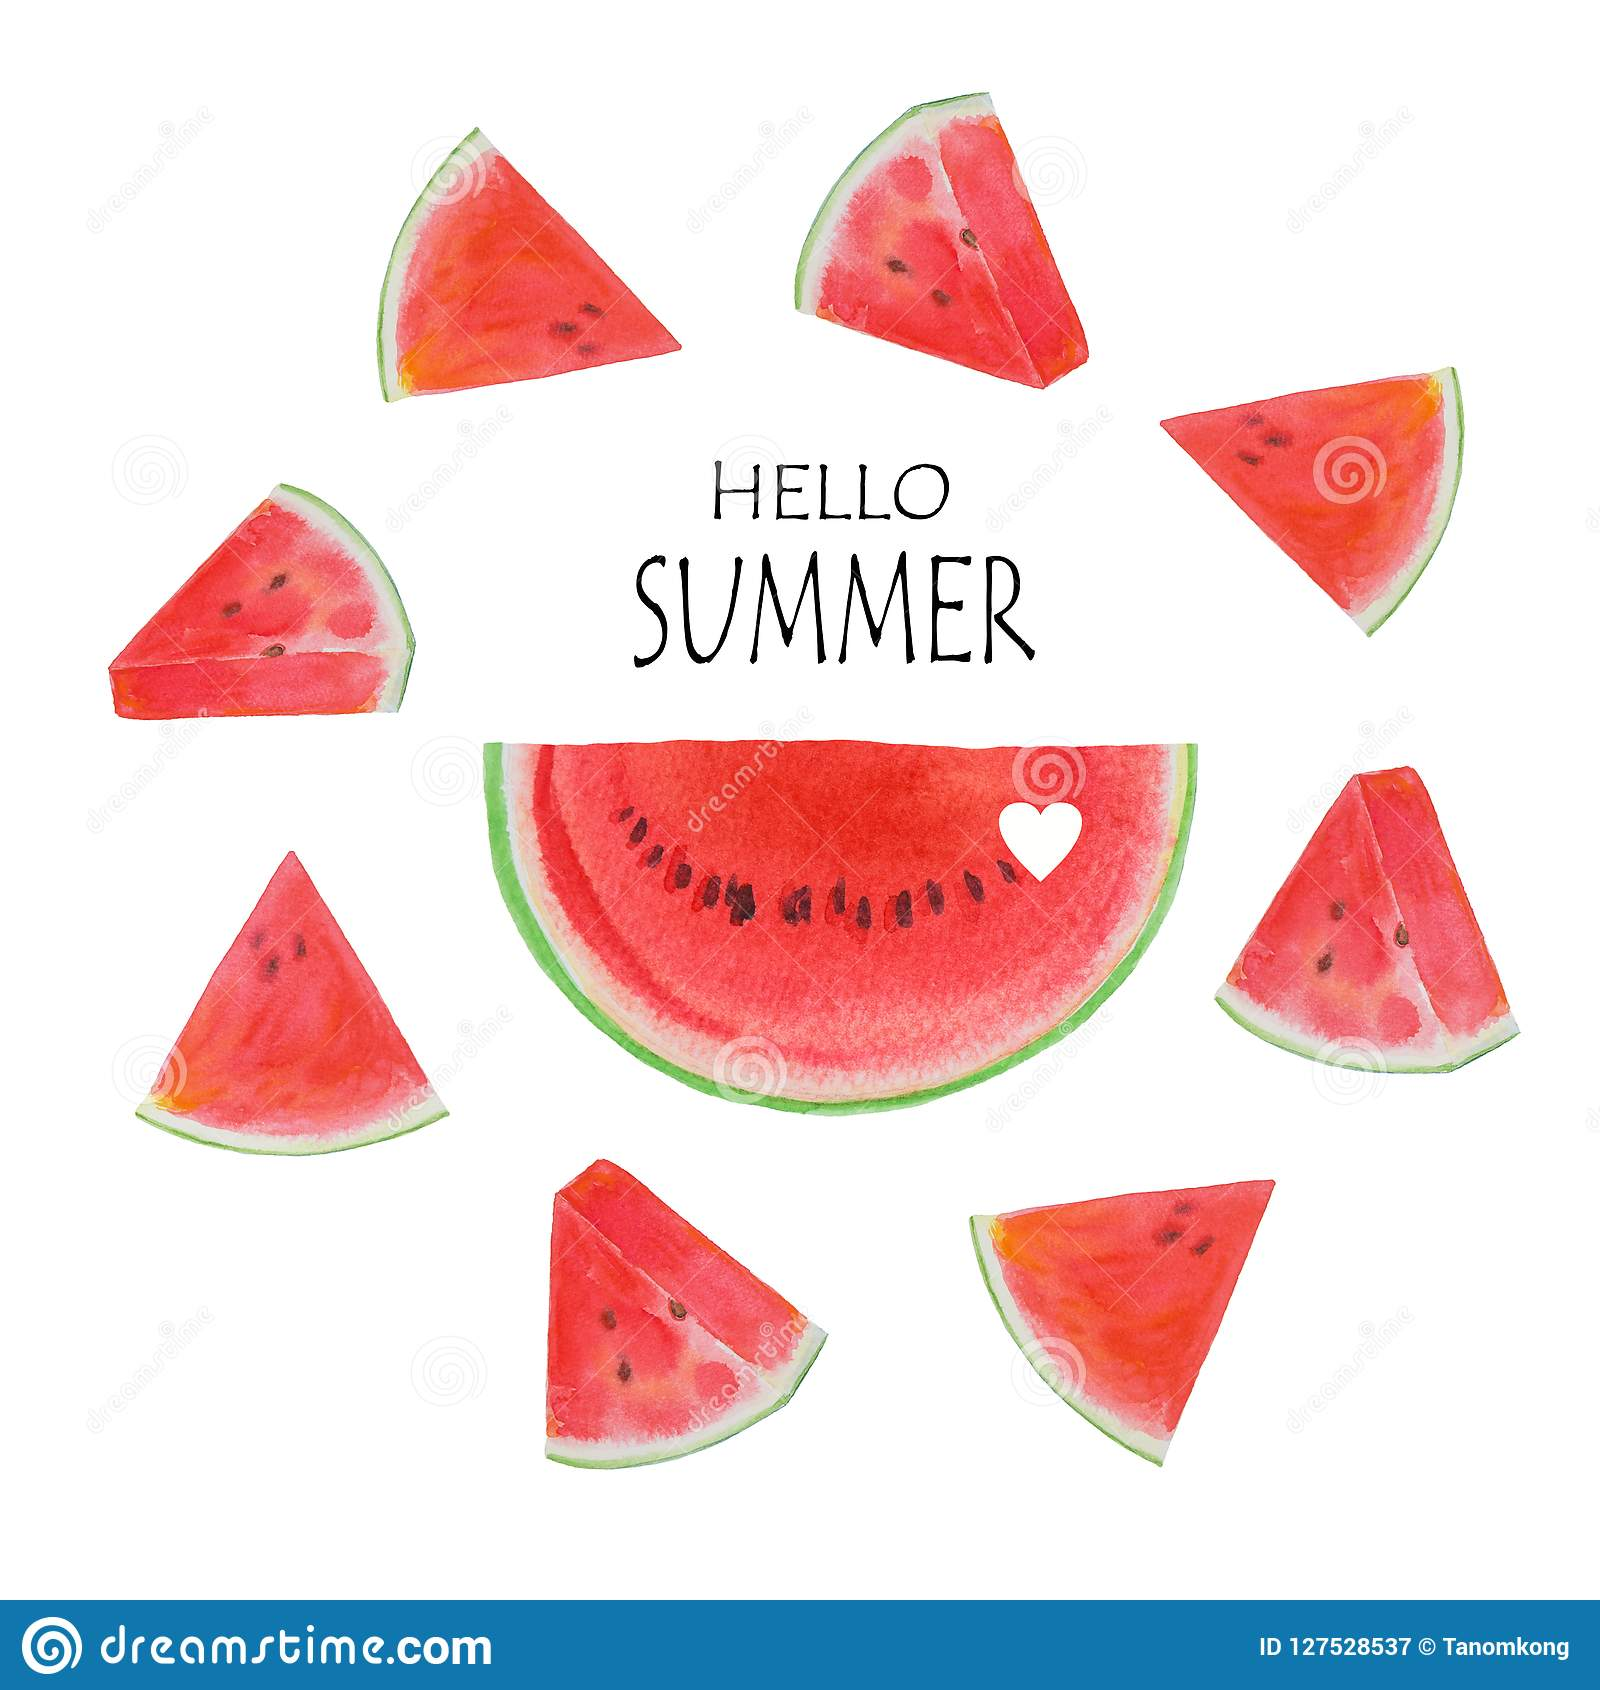 hello summer fruit with watermelon slices stock illustration